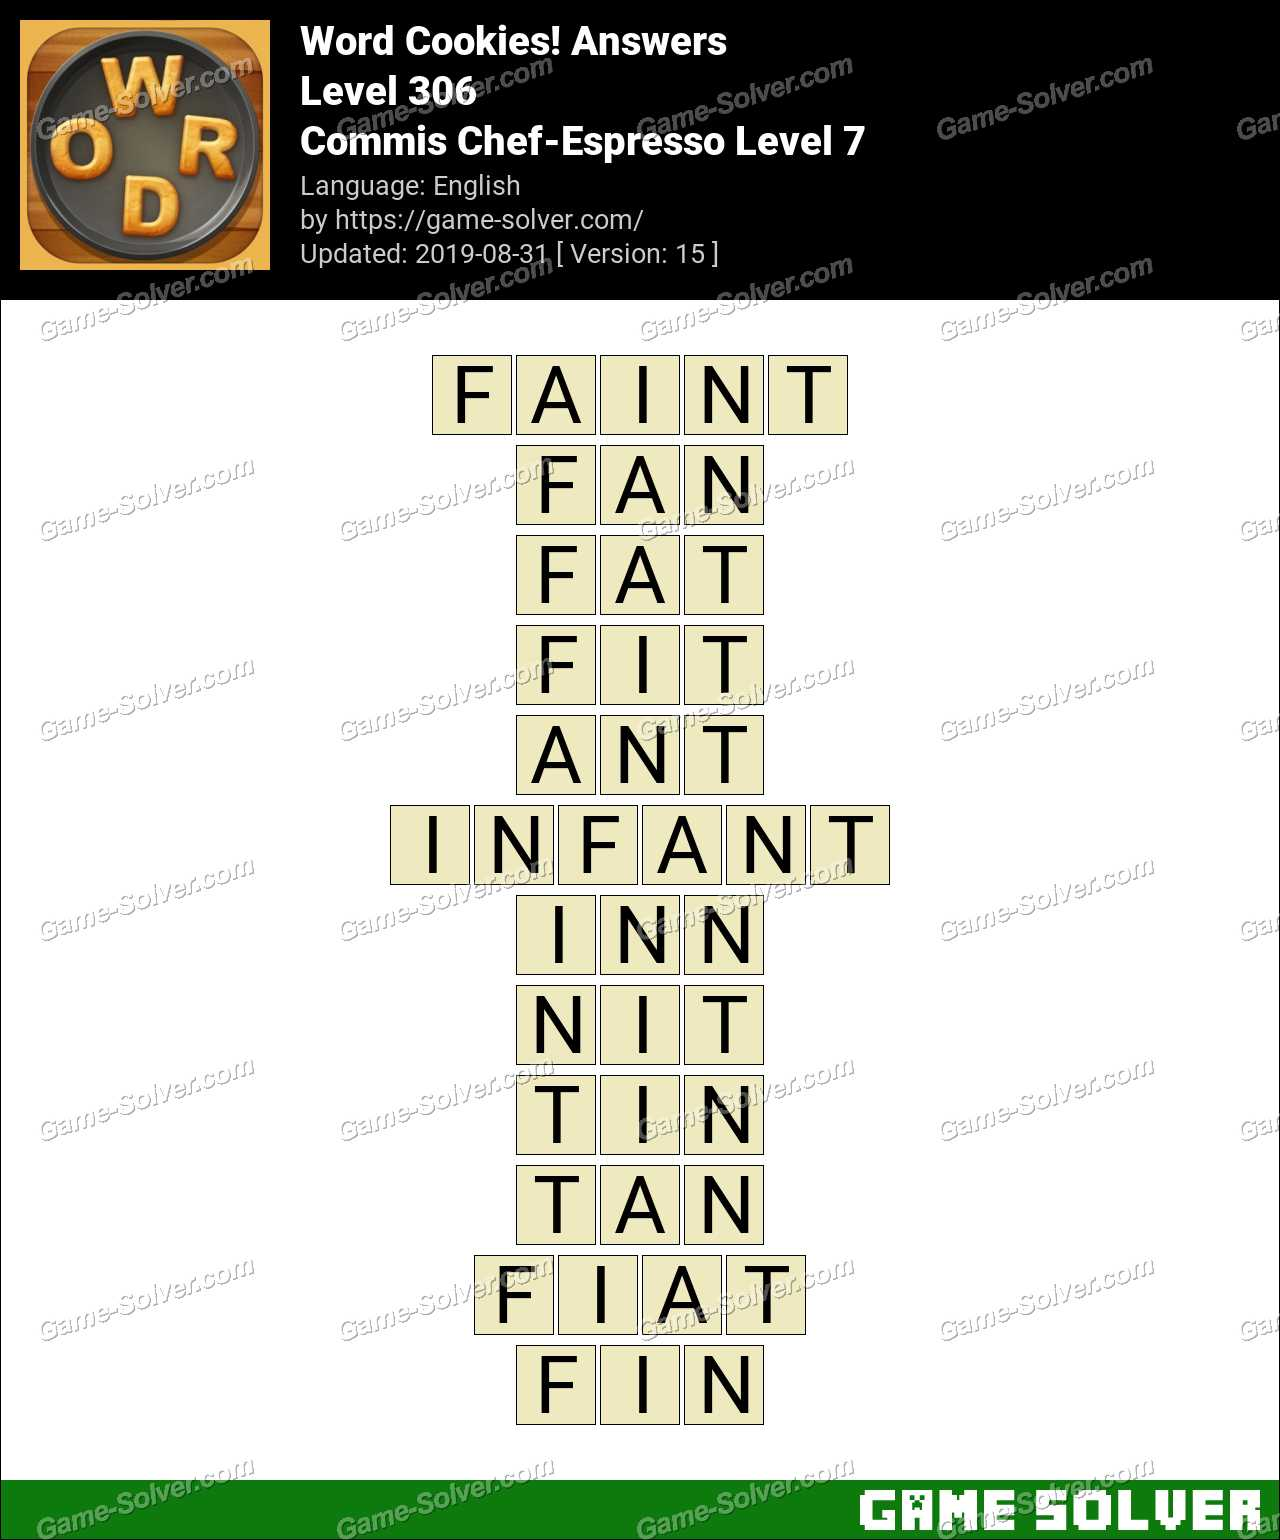 Word Cookies Commis Chef-Espresso Level 7 Answers